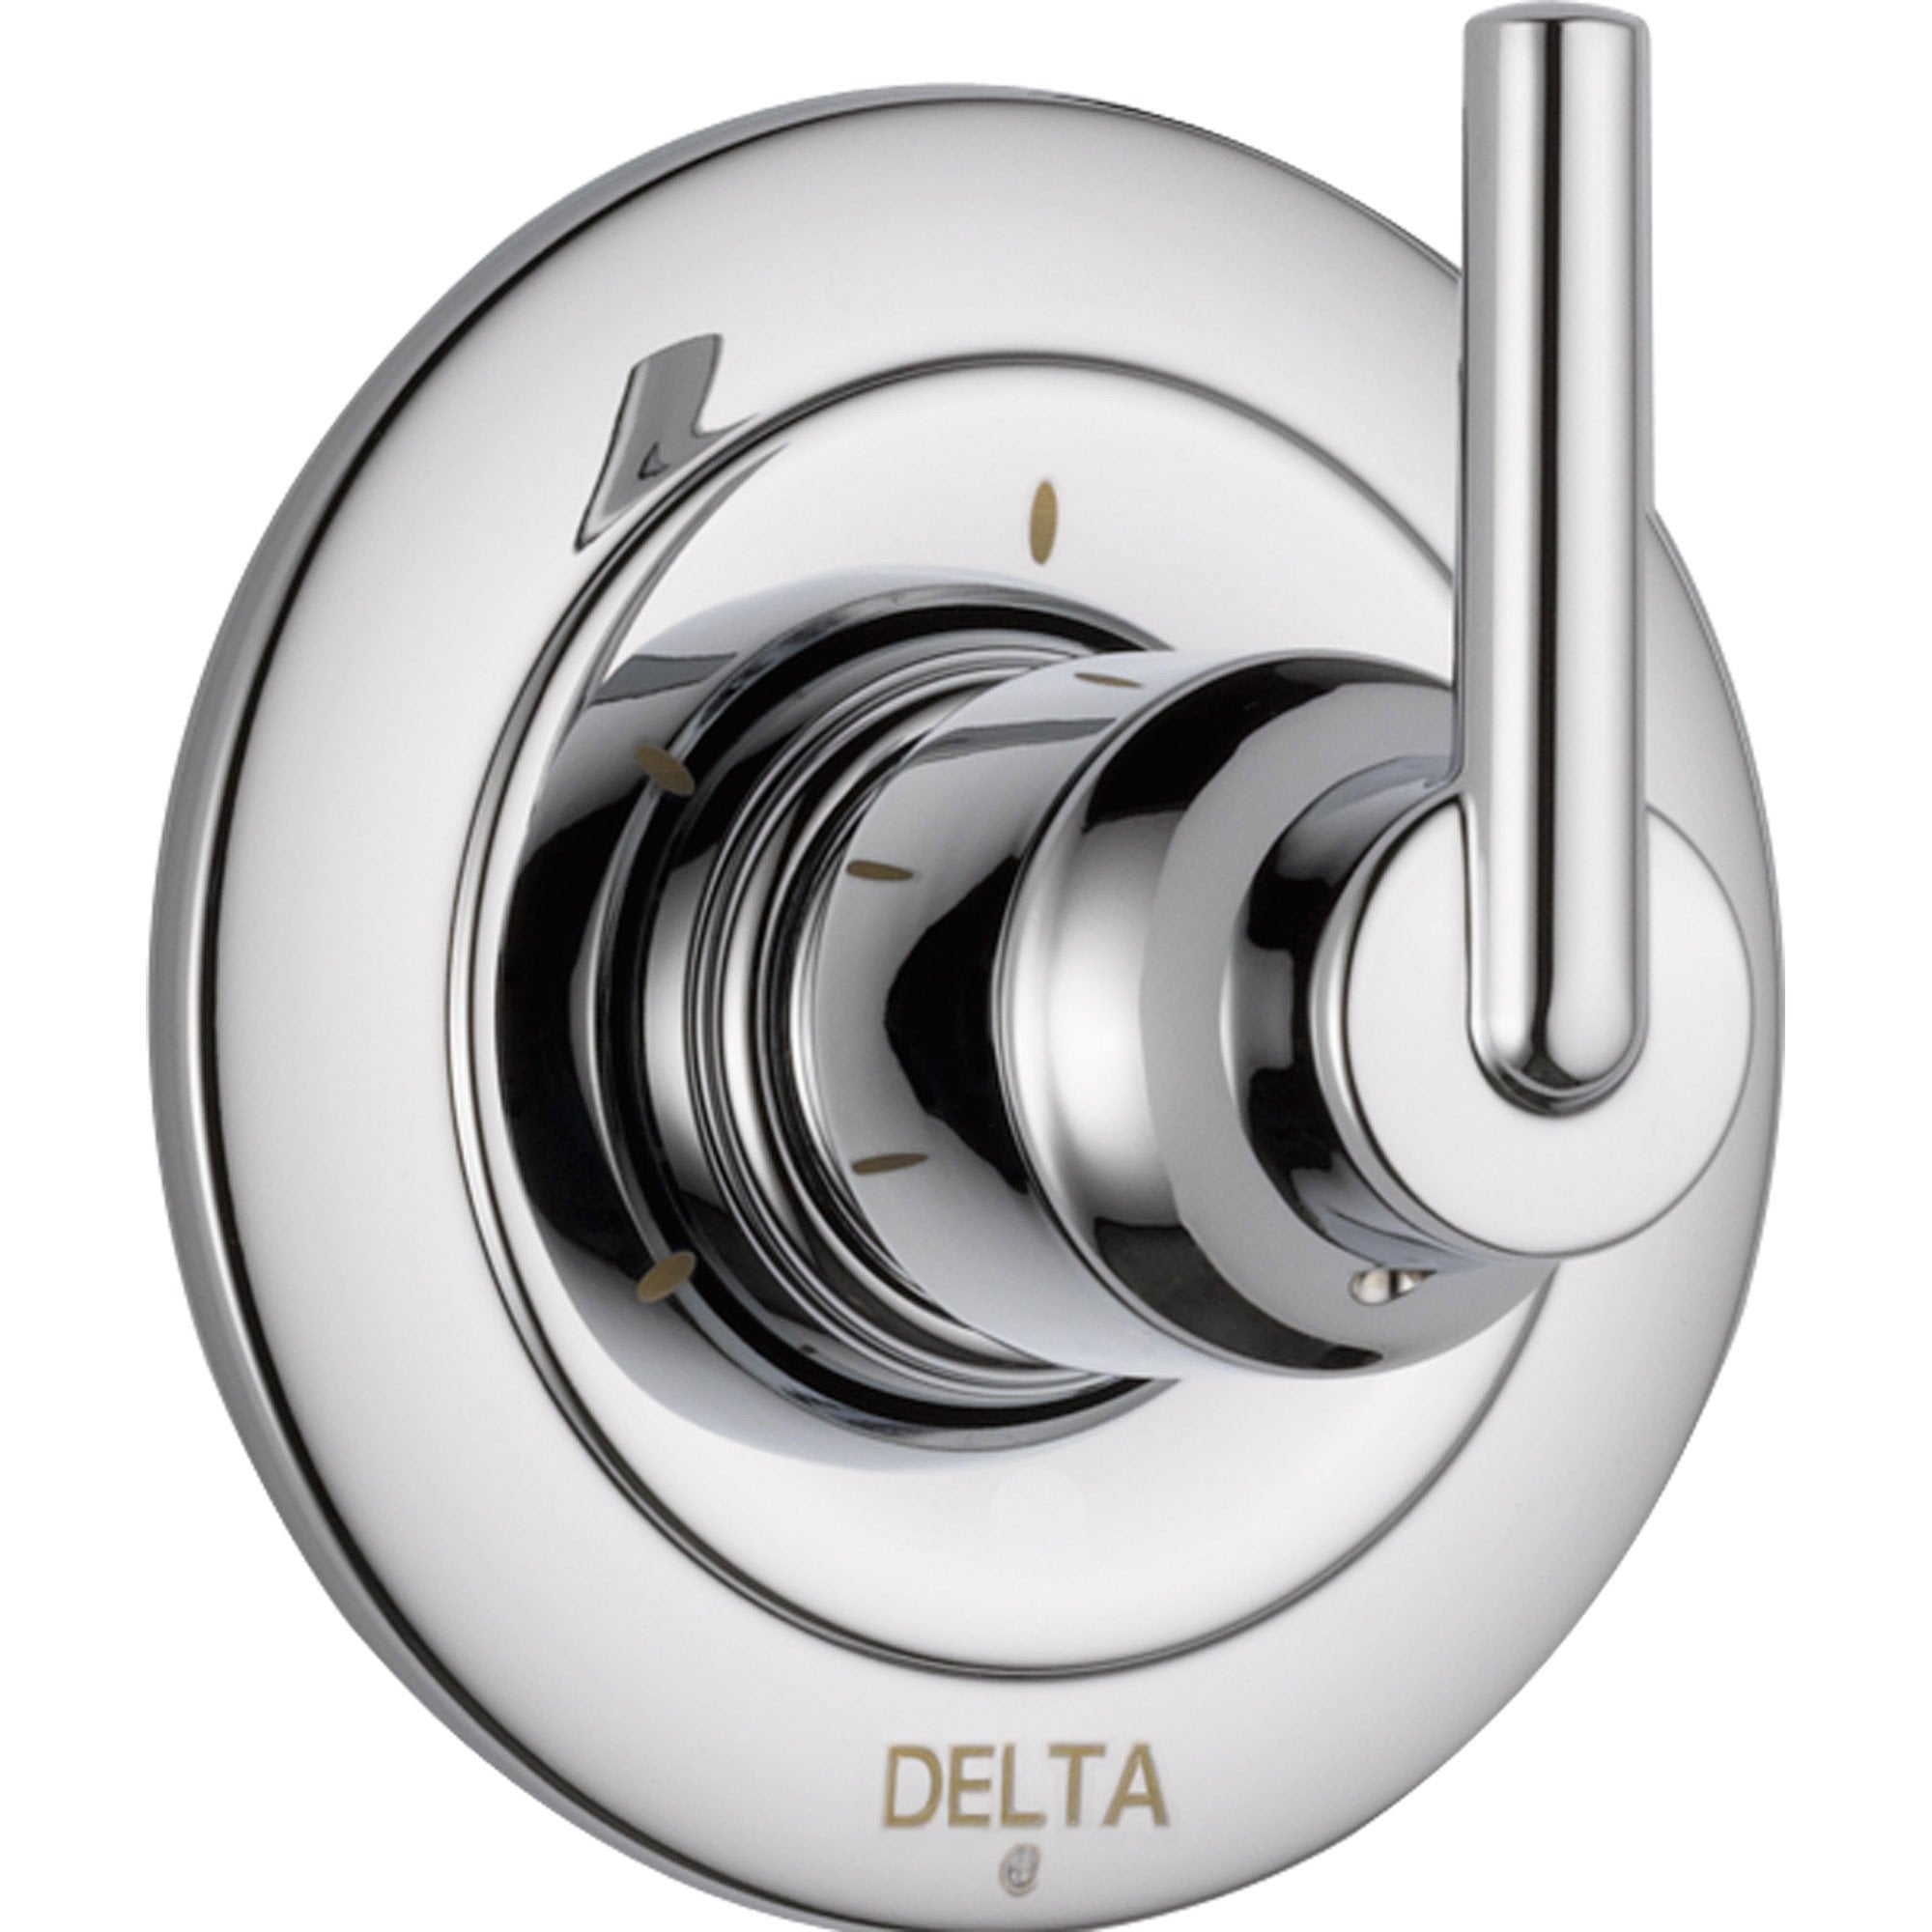 Delta Trinsic 3-Setting Modern Chrome 1-Handle Shower Diverter Trim Kit 590197